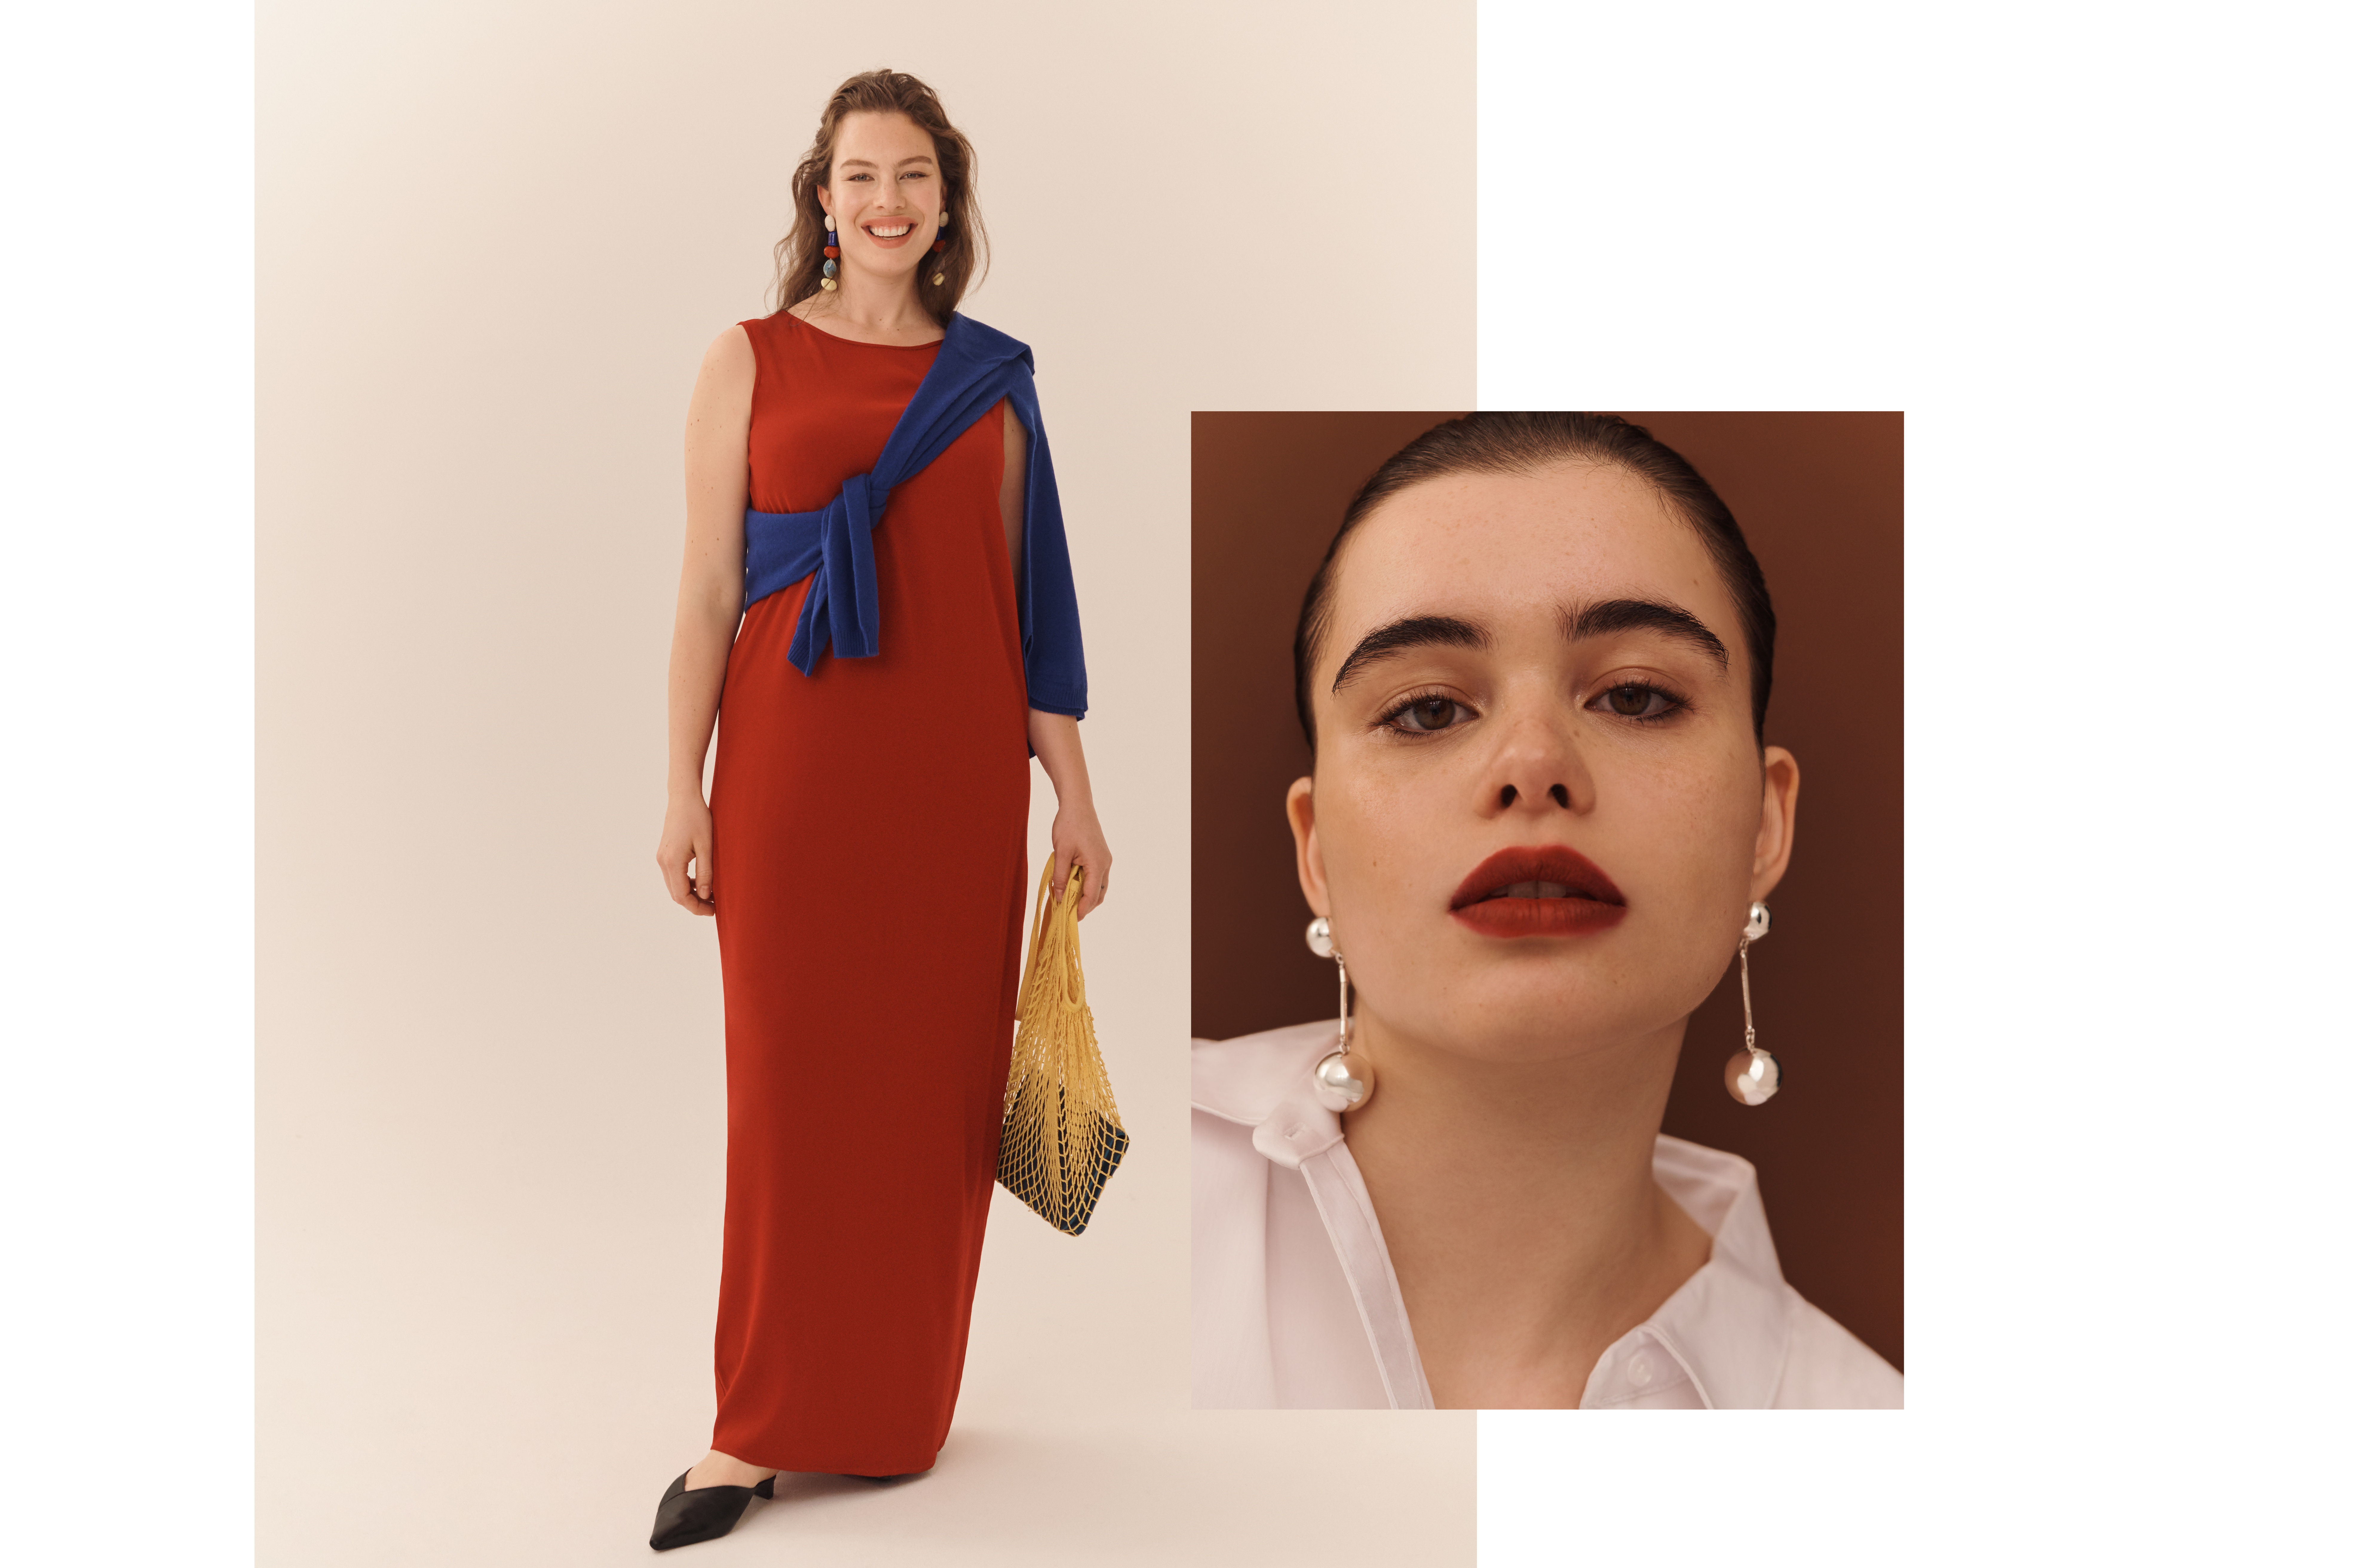 Models cast by DTE Studio for fashion and jewelry campaigns. Featuring Barbie Ferreira and Georgia Pratt.